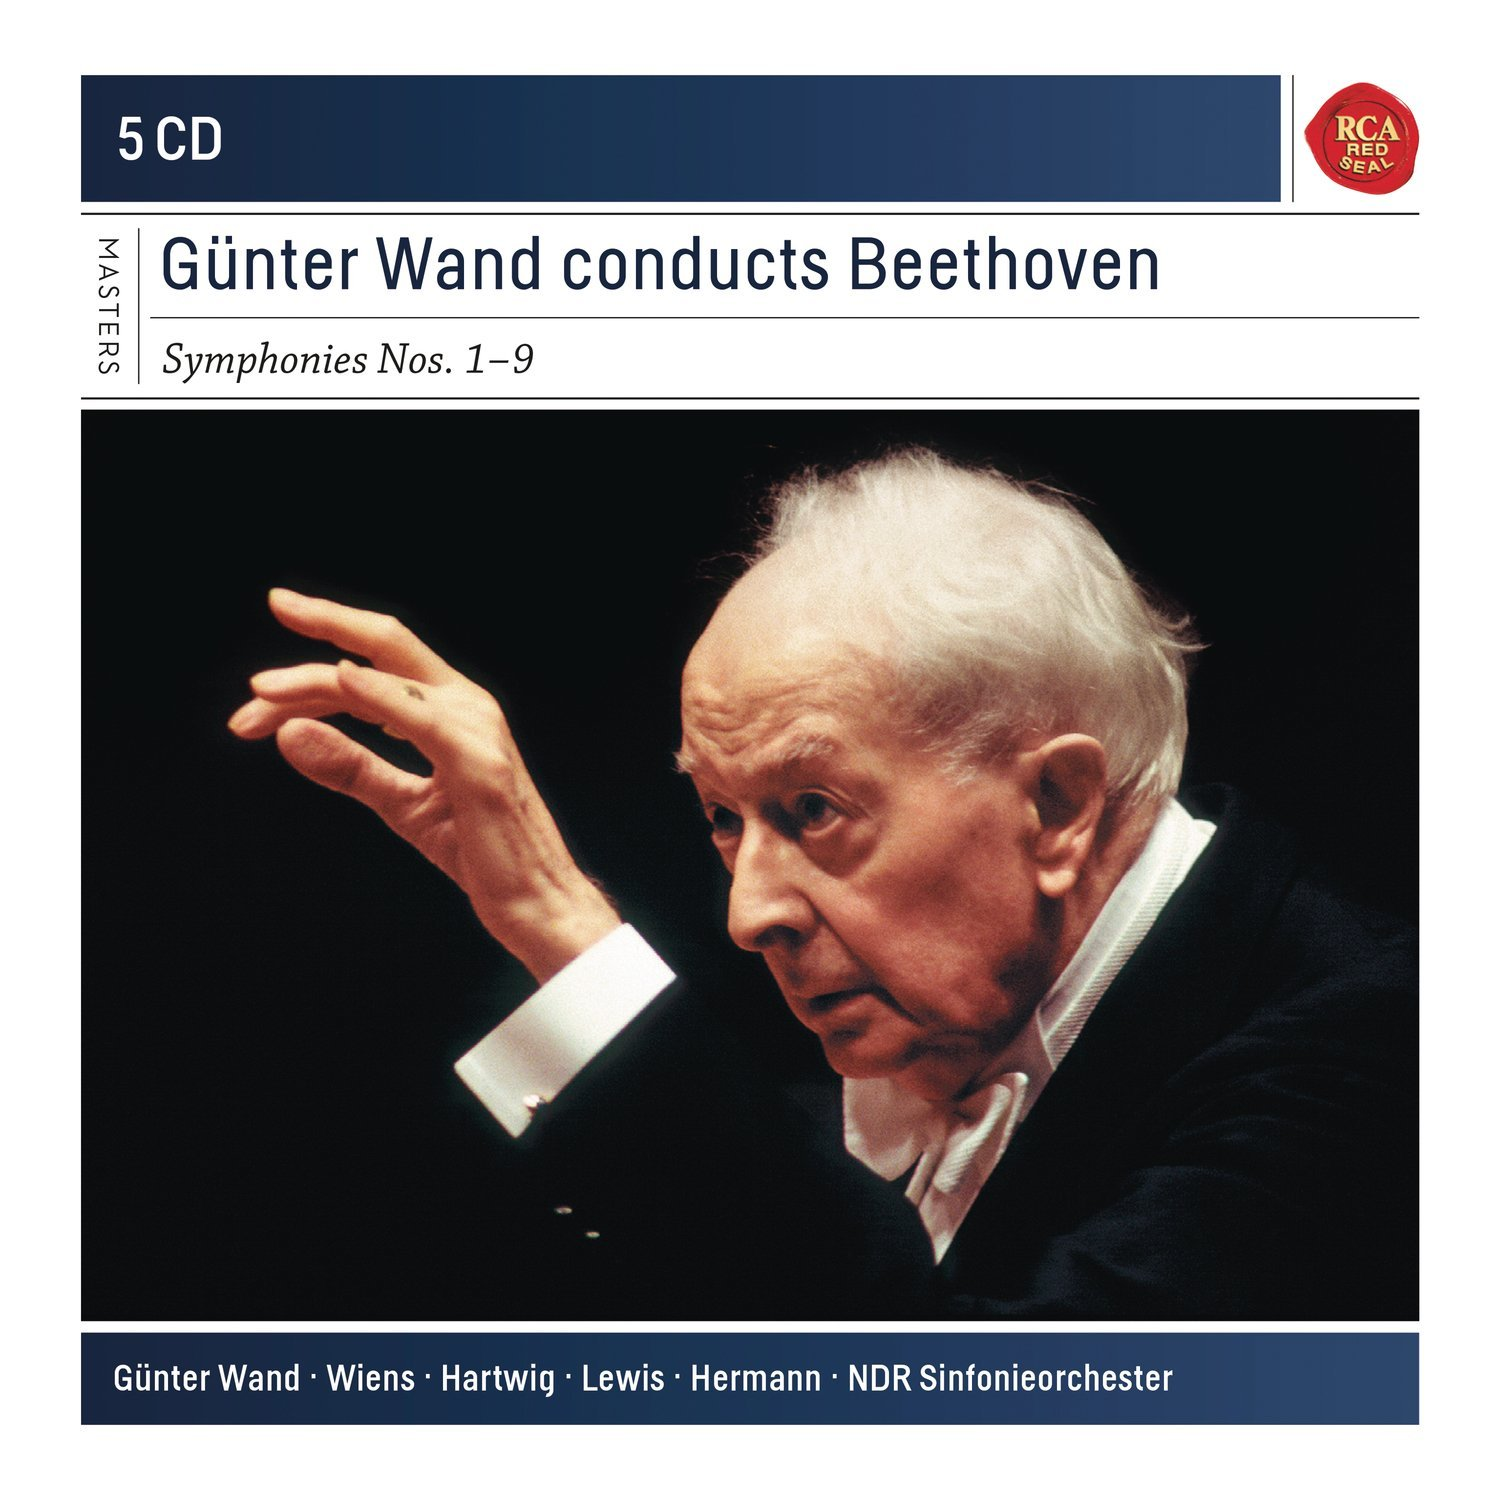 Gunter Wand conducts Beethoven